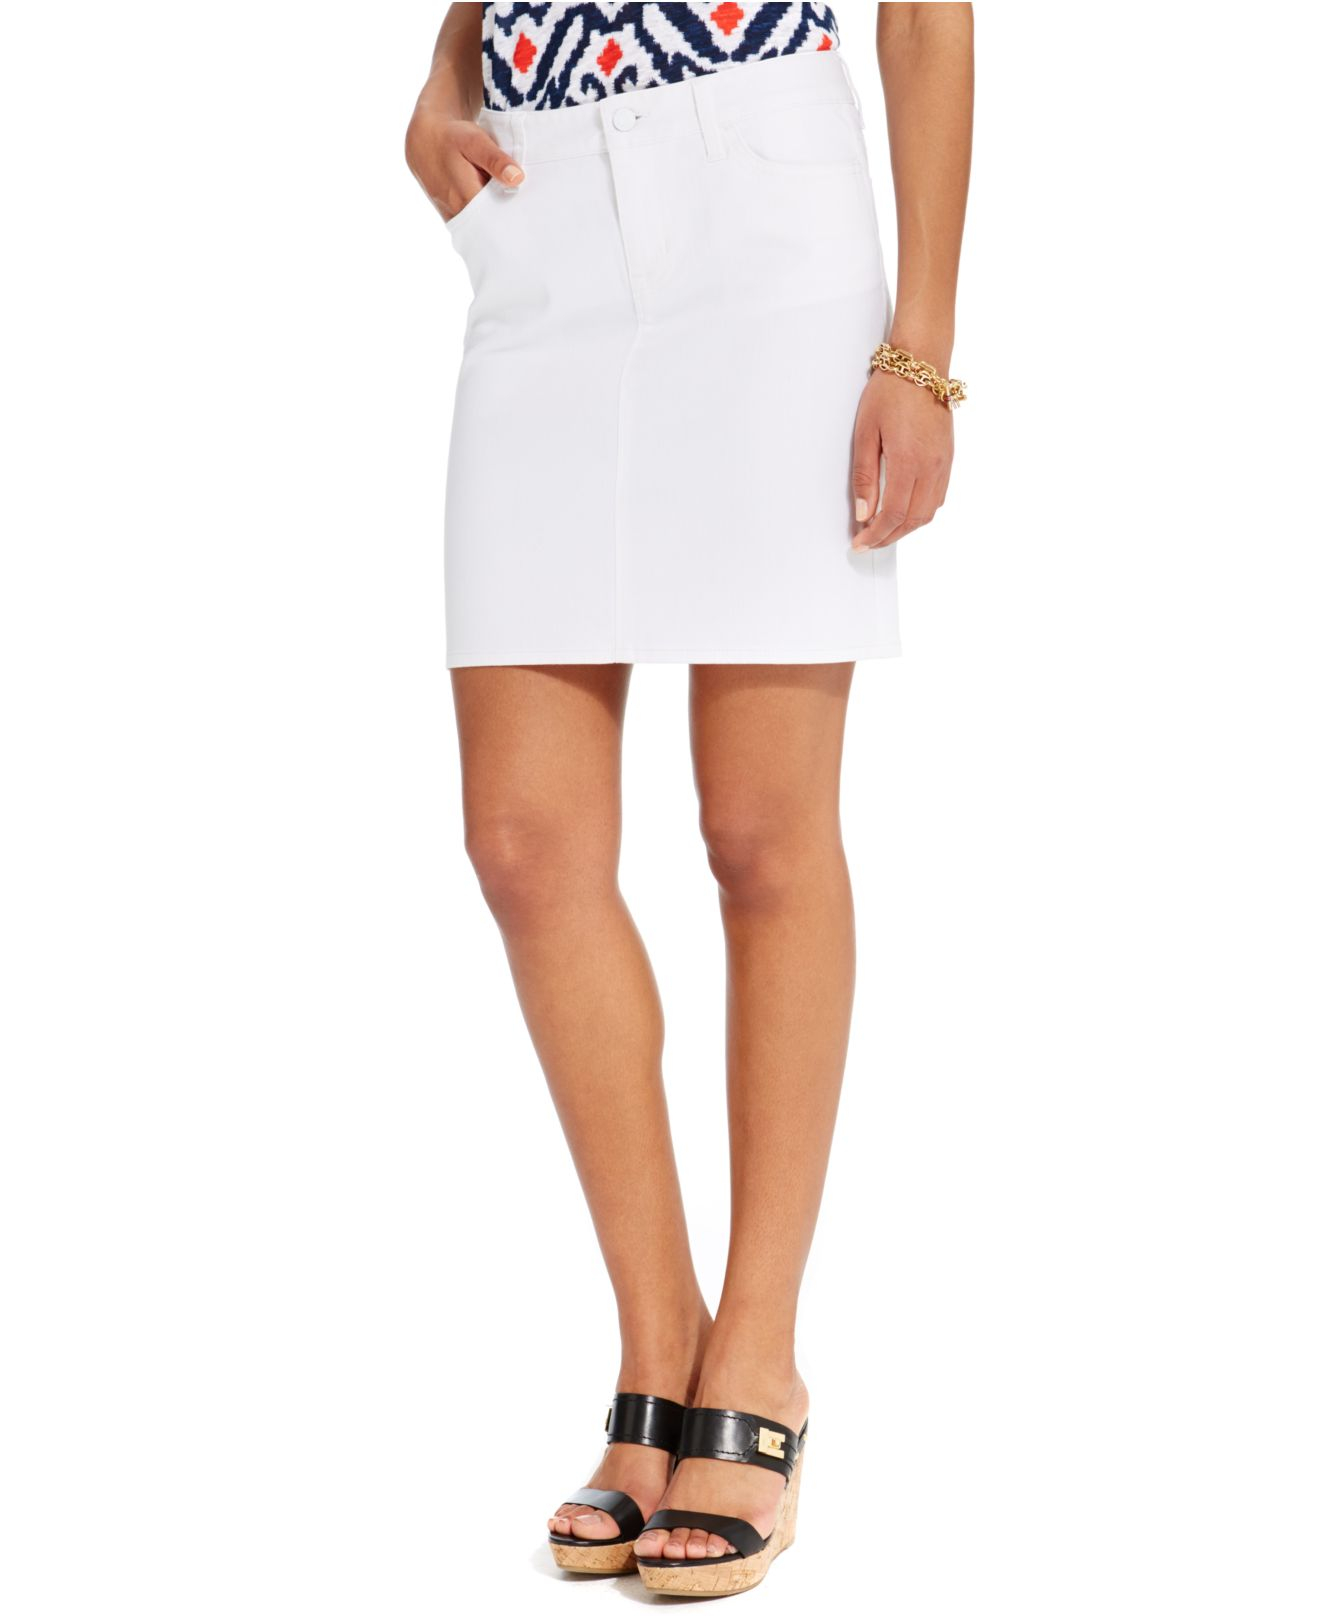 Cheap Sale Latest Collections Womens Nita Skirt Skirt Tommy Hilfiger Many Kinds Of Newest Cheap Price liHYPN6